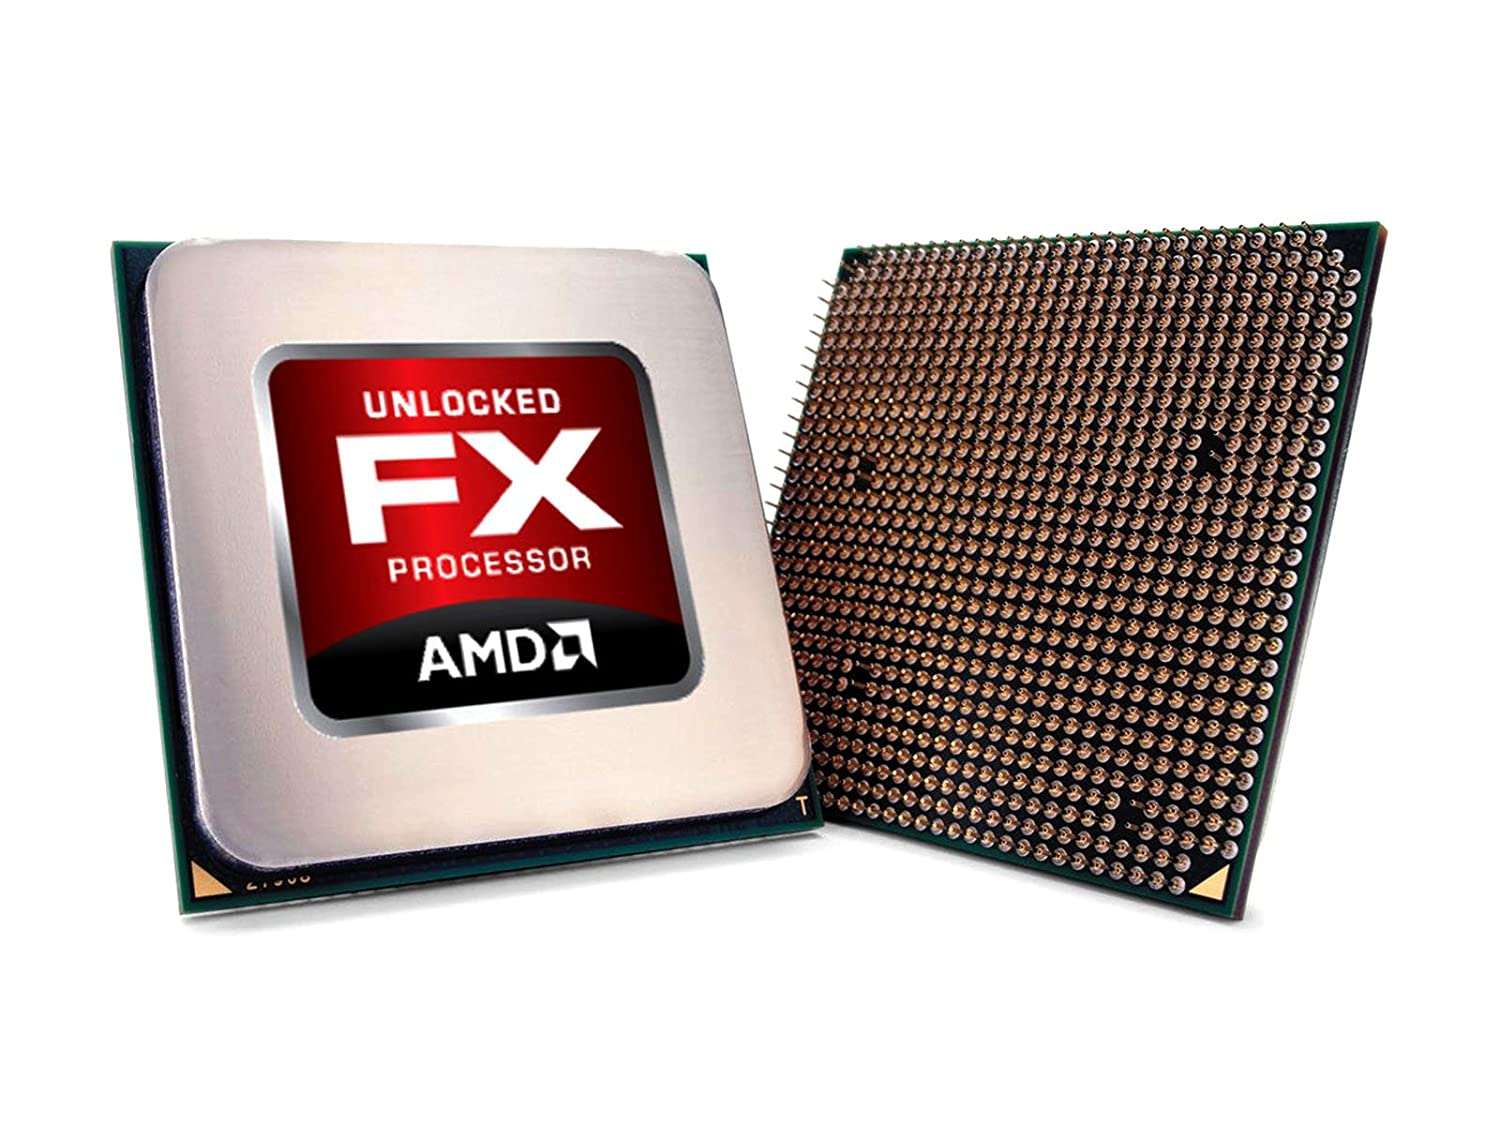 AMD FX-Series FX-8120 FX8120 DeskTop CPU Socket AM3 938 FD8120WMW8KGU FD8120WMGUSBX 3.1GHz 8MB 8 cores 95w